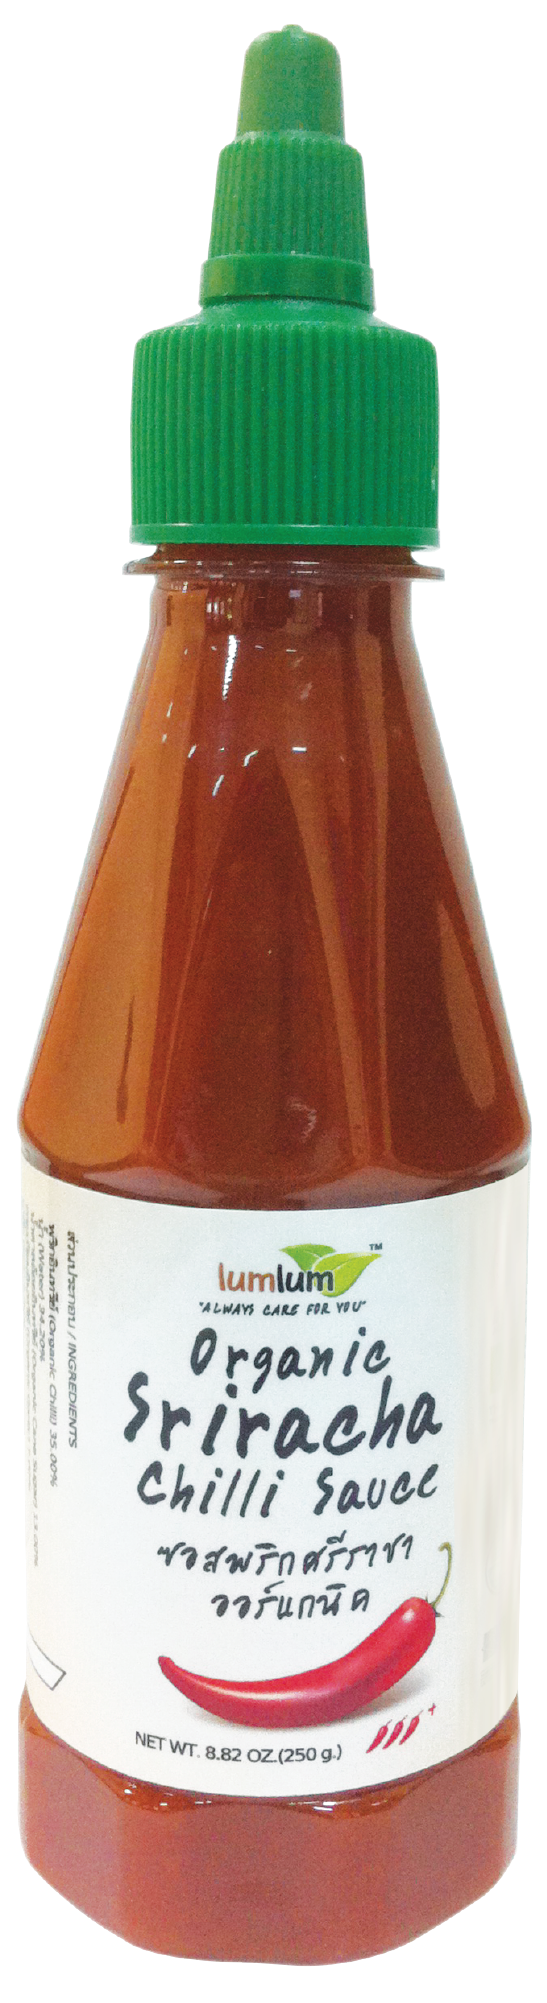 Organic Sriracha Chilli Sauce ( An Authentic Thai Spicy Sauce )